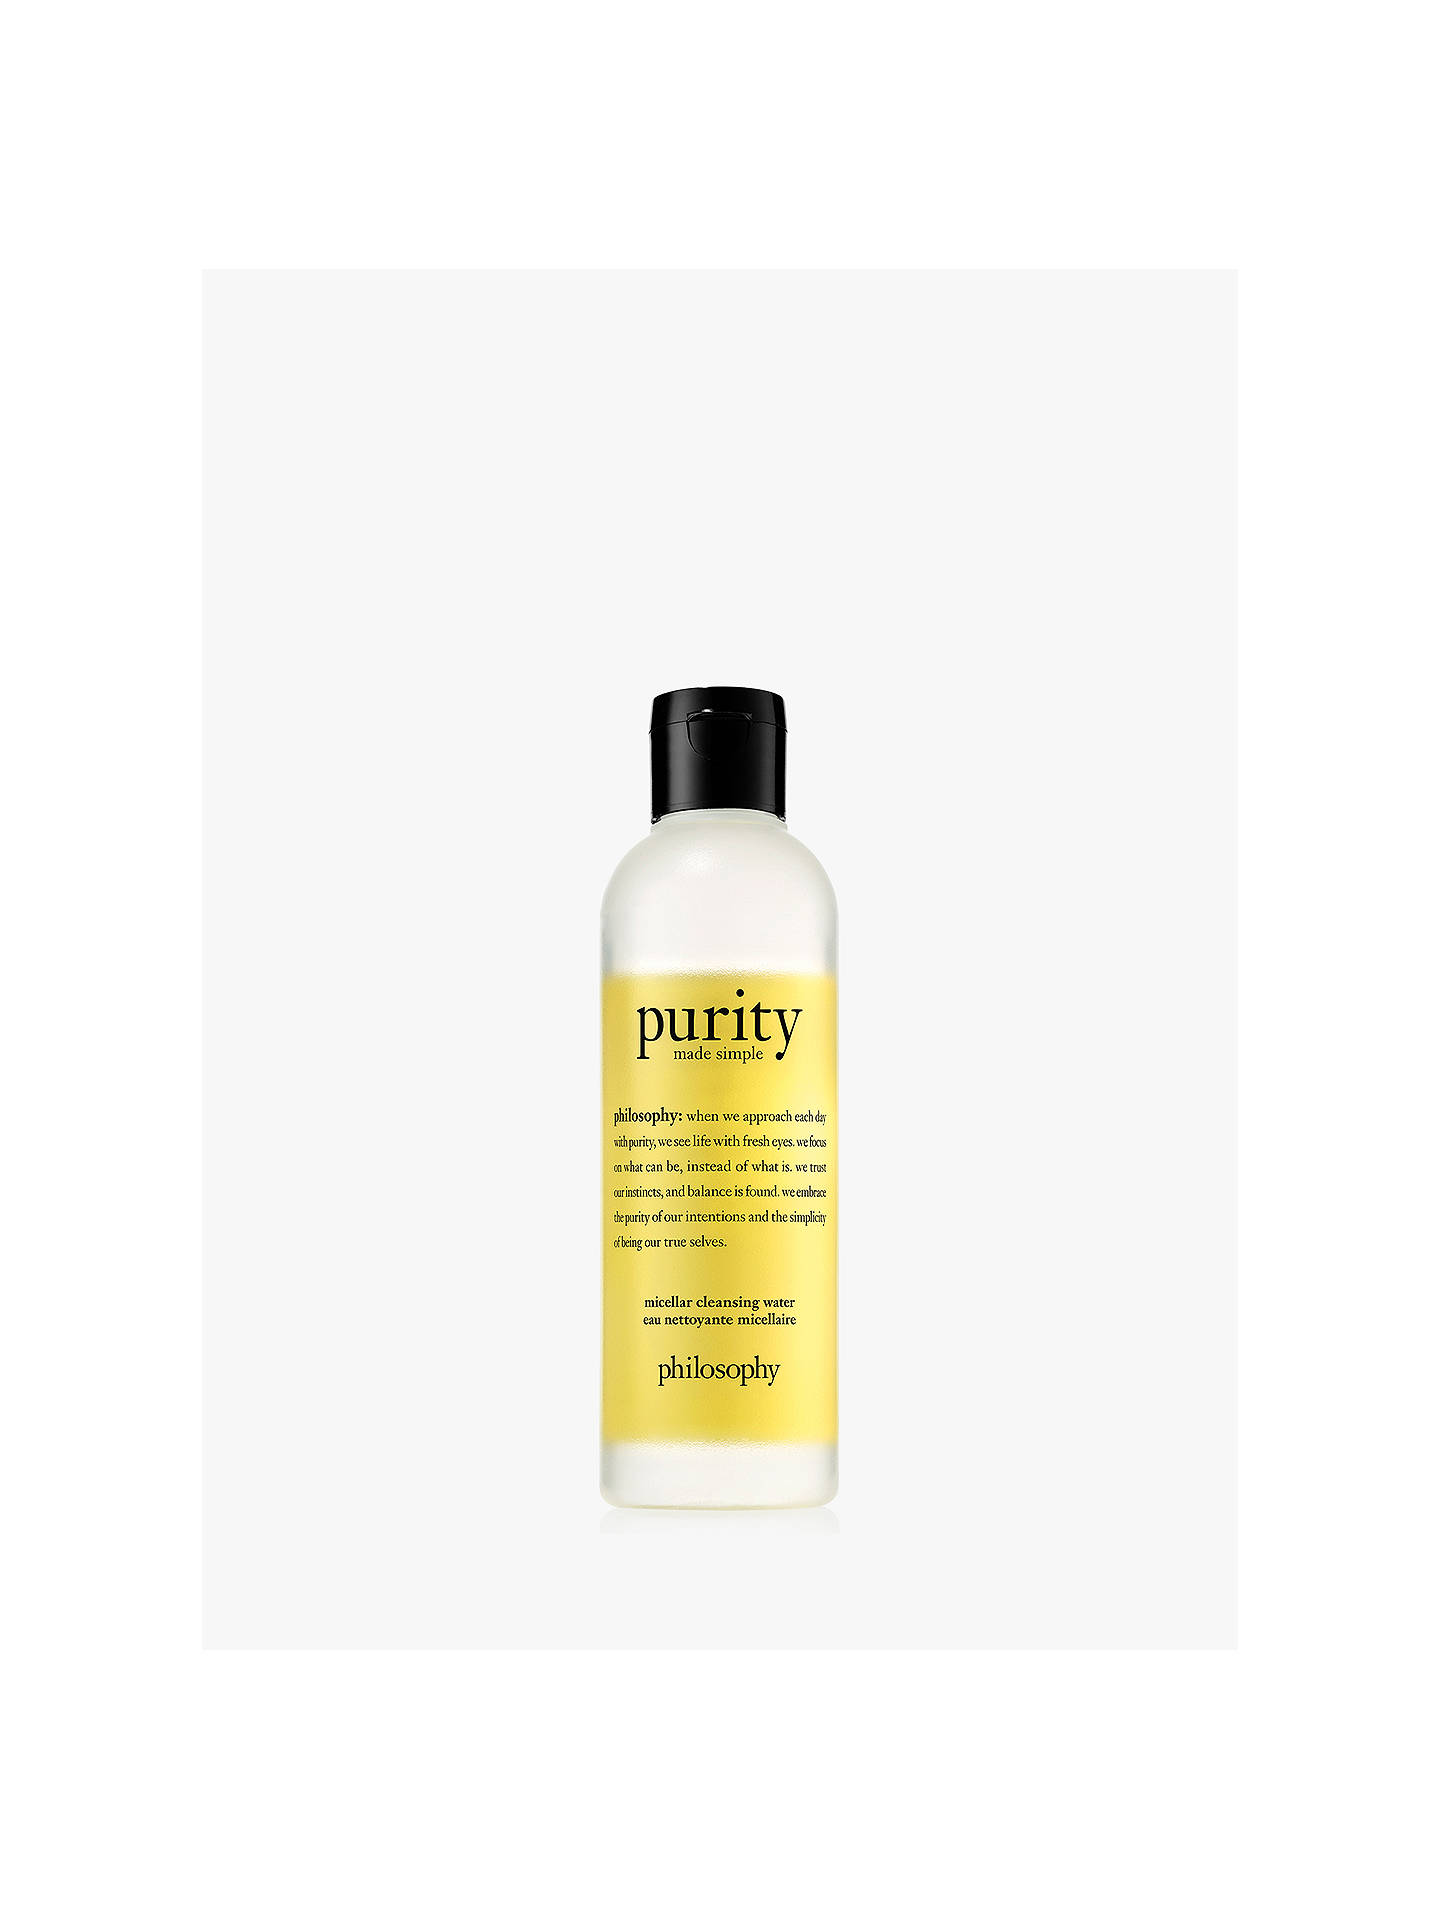 Buy Philosophy Purity Made Simple Cleansing Micellar Water, 200ml Online at johnlewis.com